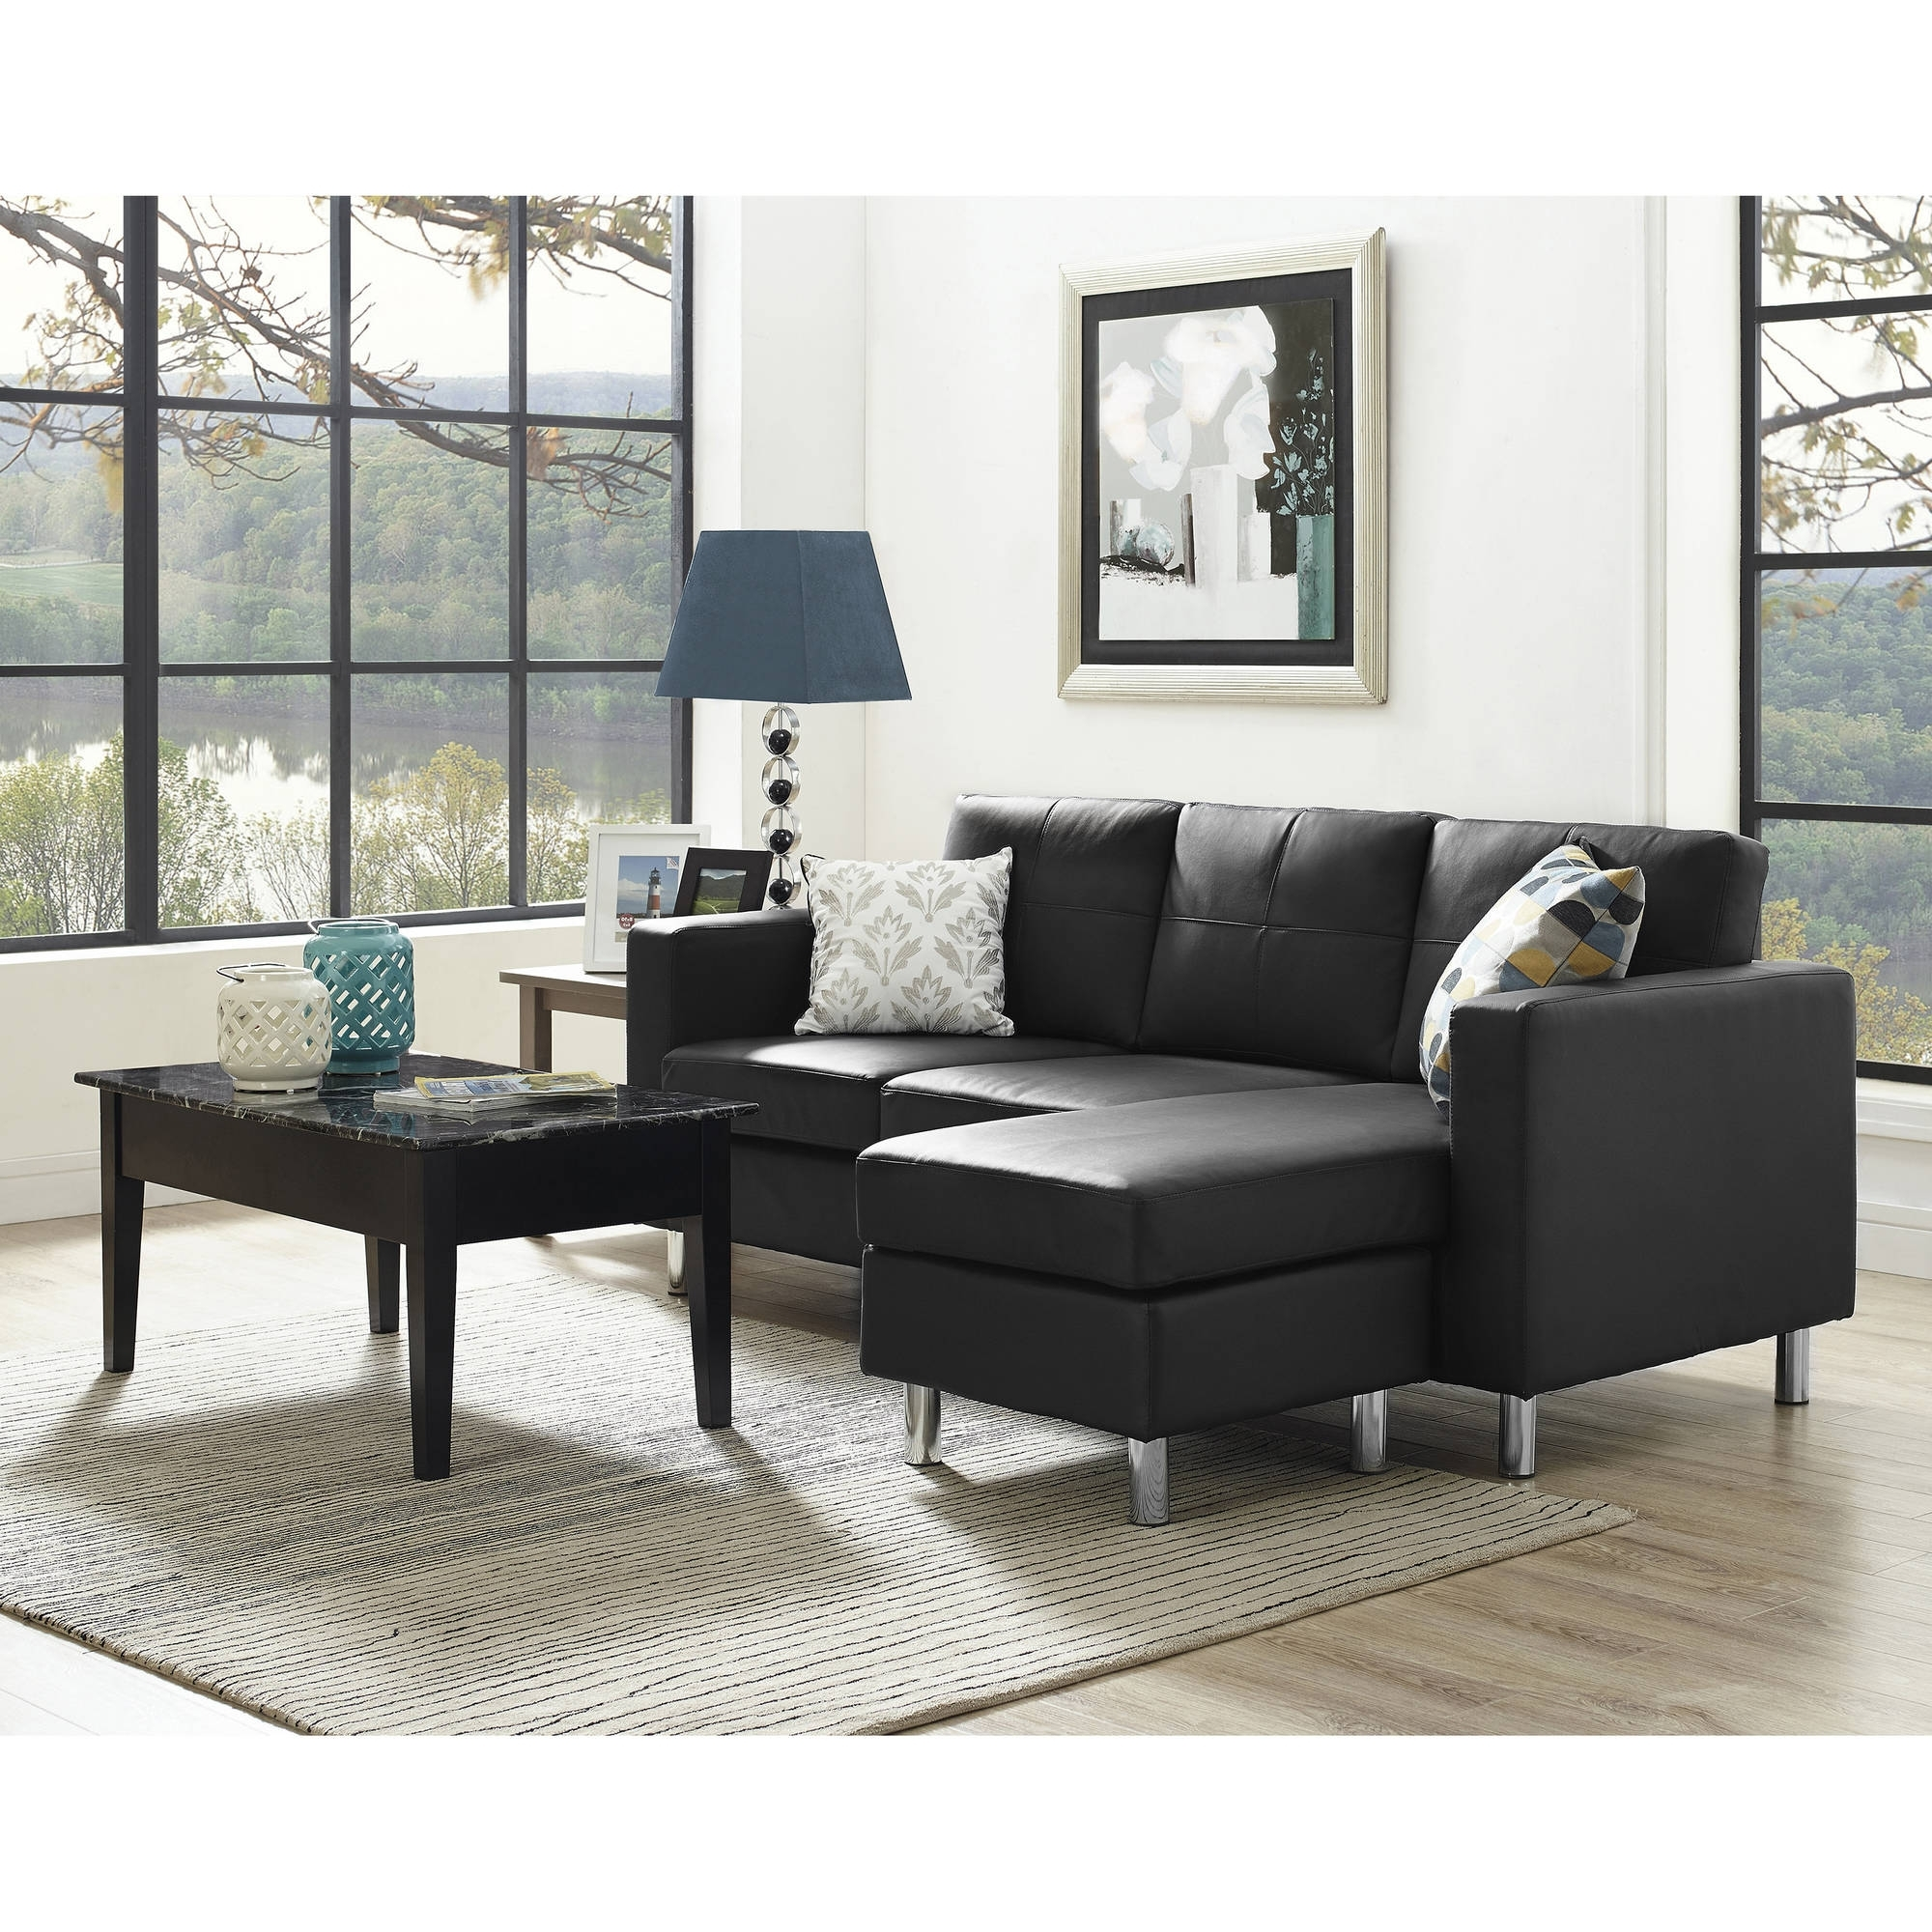 Well Known Sectional Sofas For Small Spaces In Choice (View 14 of 15)